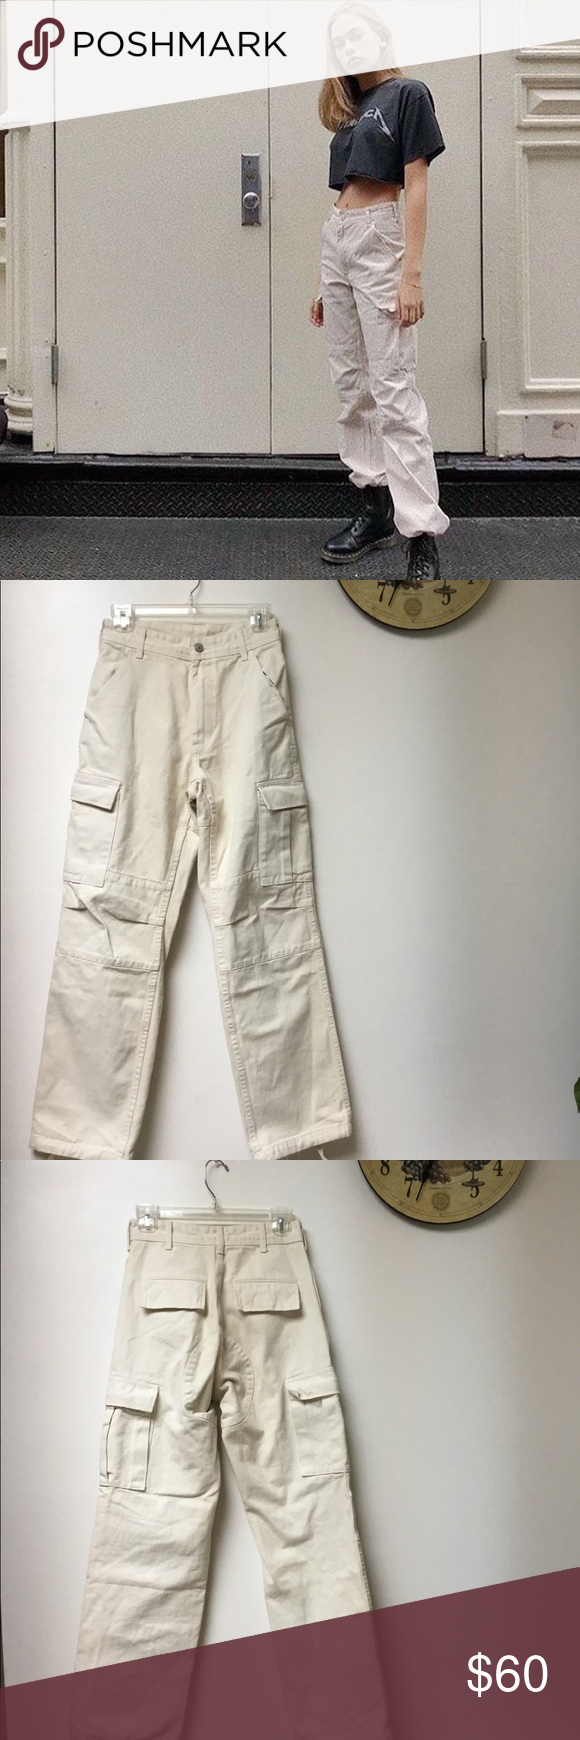 cac03bf49c84 Brandy Melville cream piper worker cargo pants Brand new best fits size  small Brandy Melville Pants